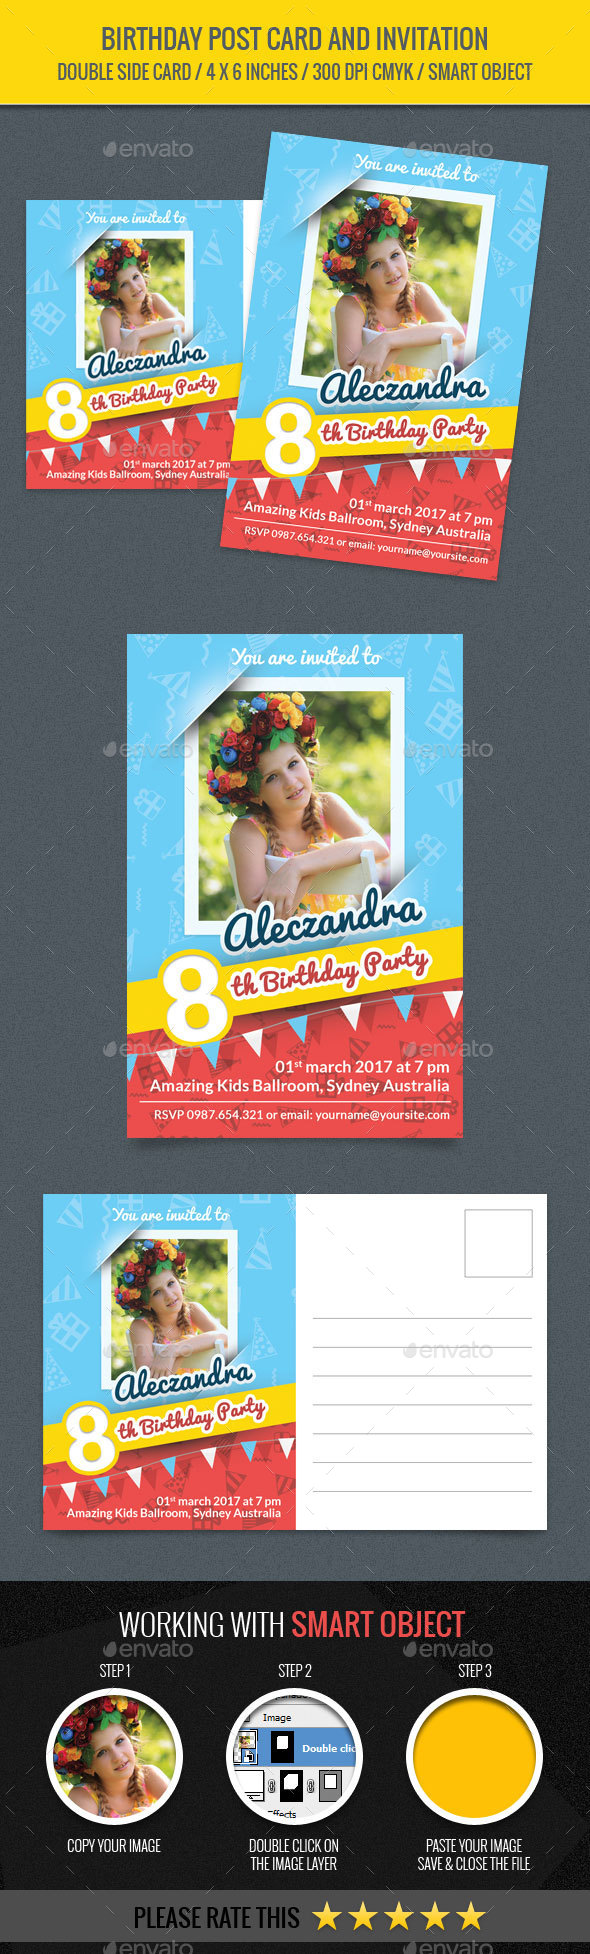 Birthday Post Card and Invitation Card - Birthday Greeting Cards